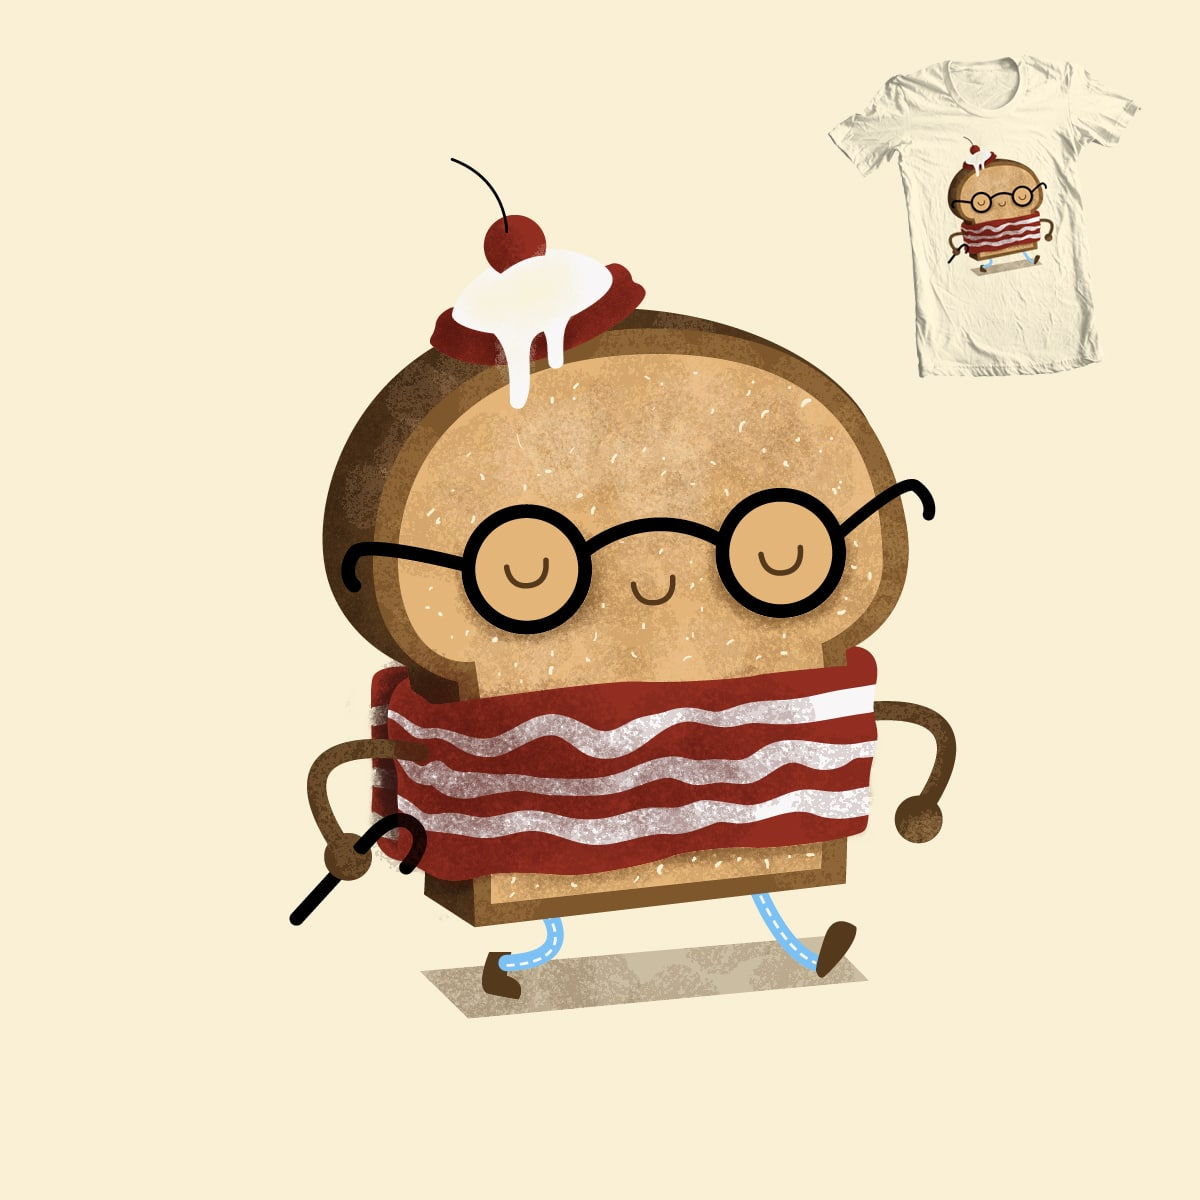 Where is my breakfast? by M-e-p on Threadless